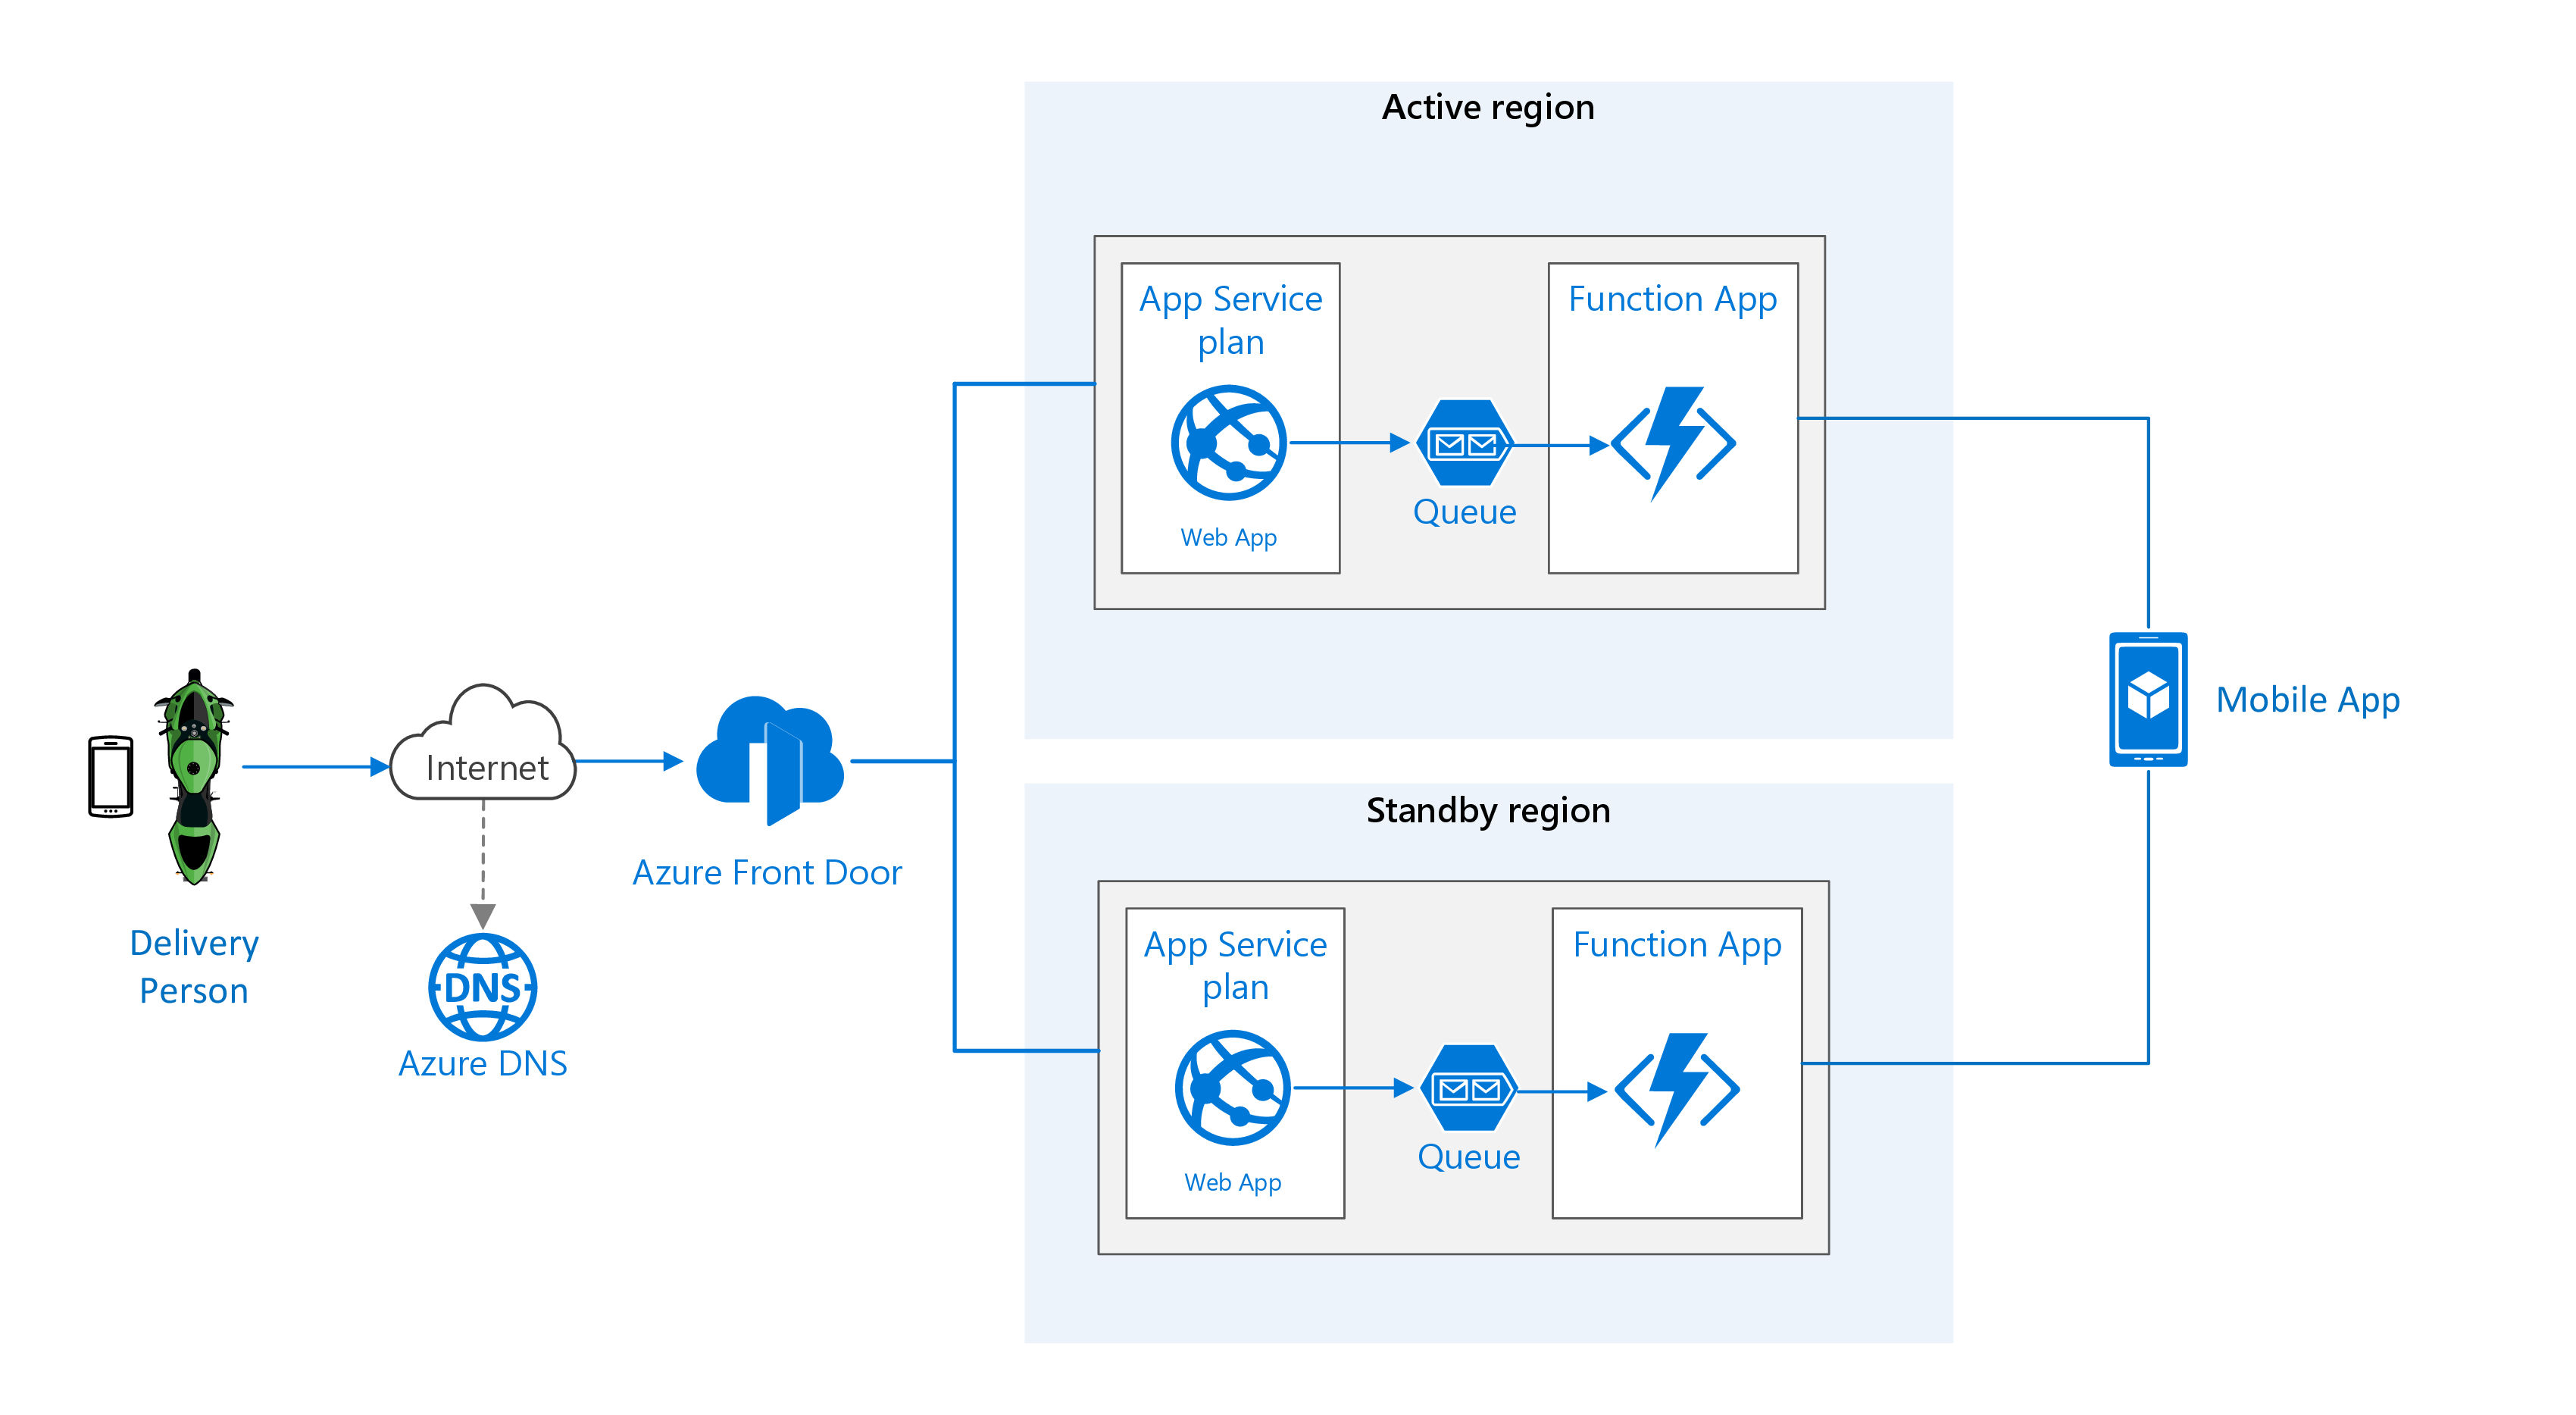 azure queue architecture diagram sharing location in real time using low cost serverless azure  serverless azure